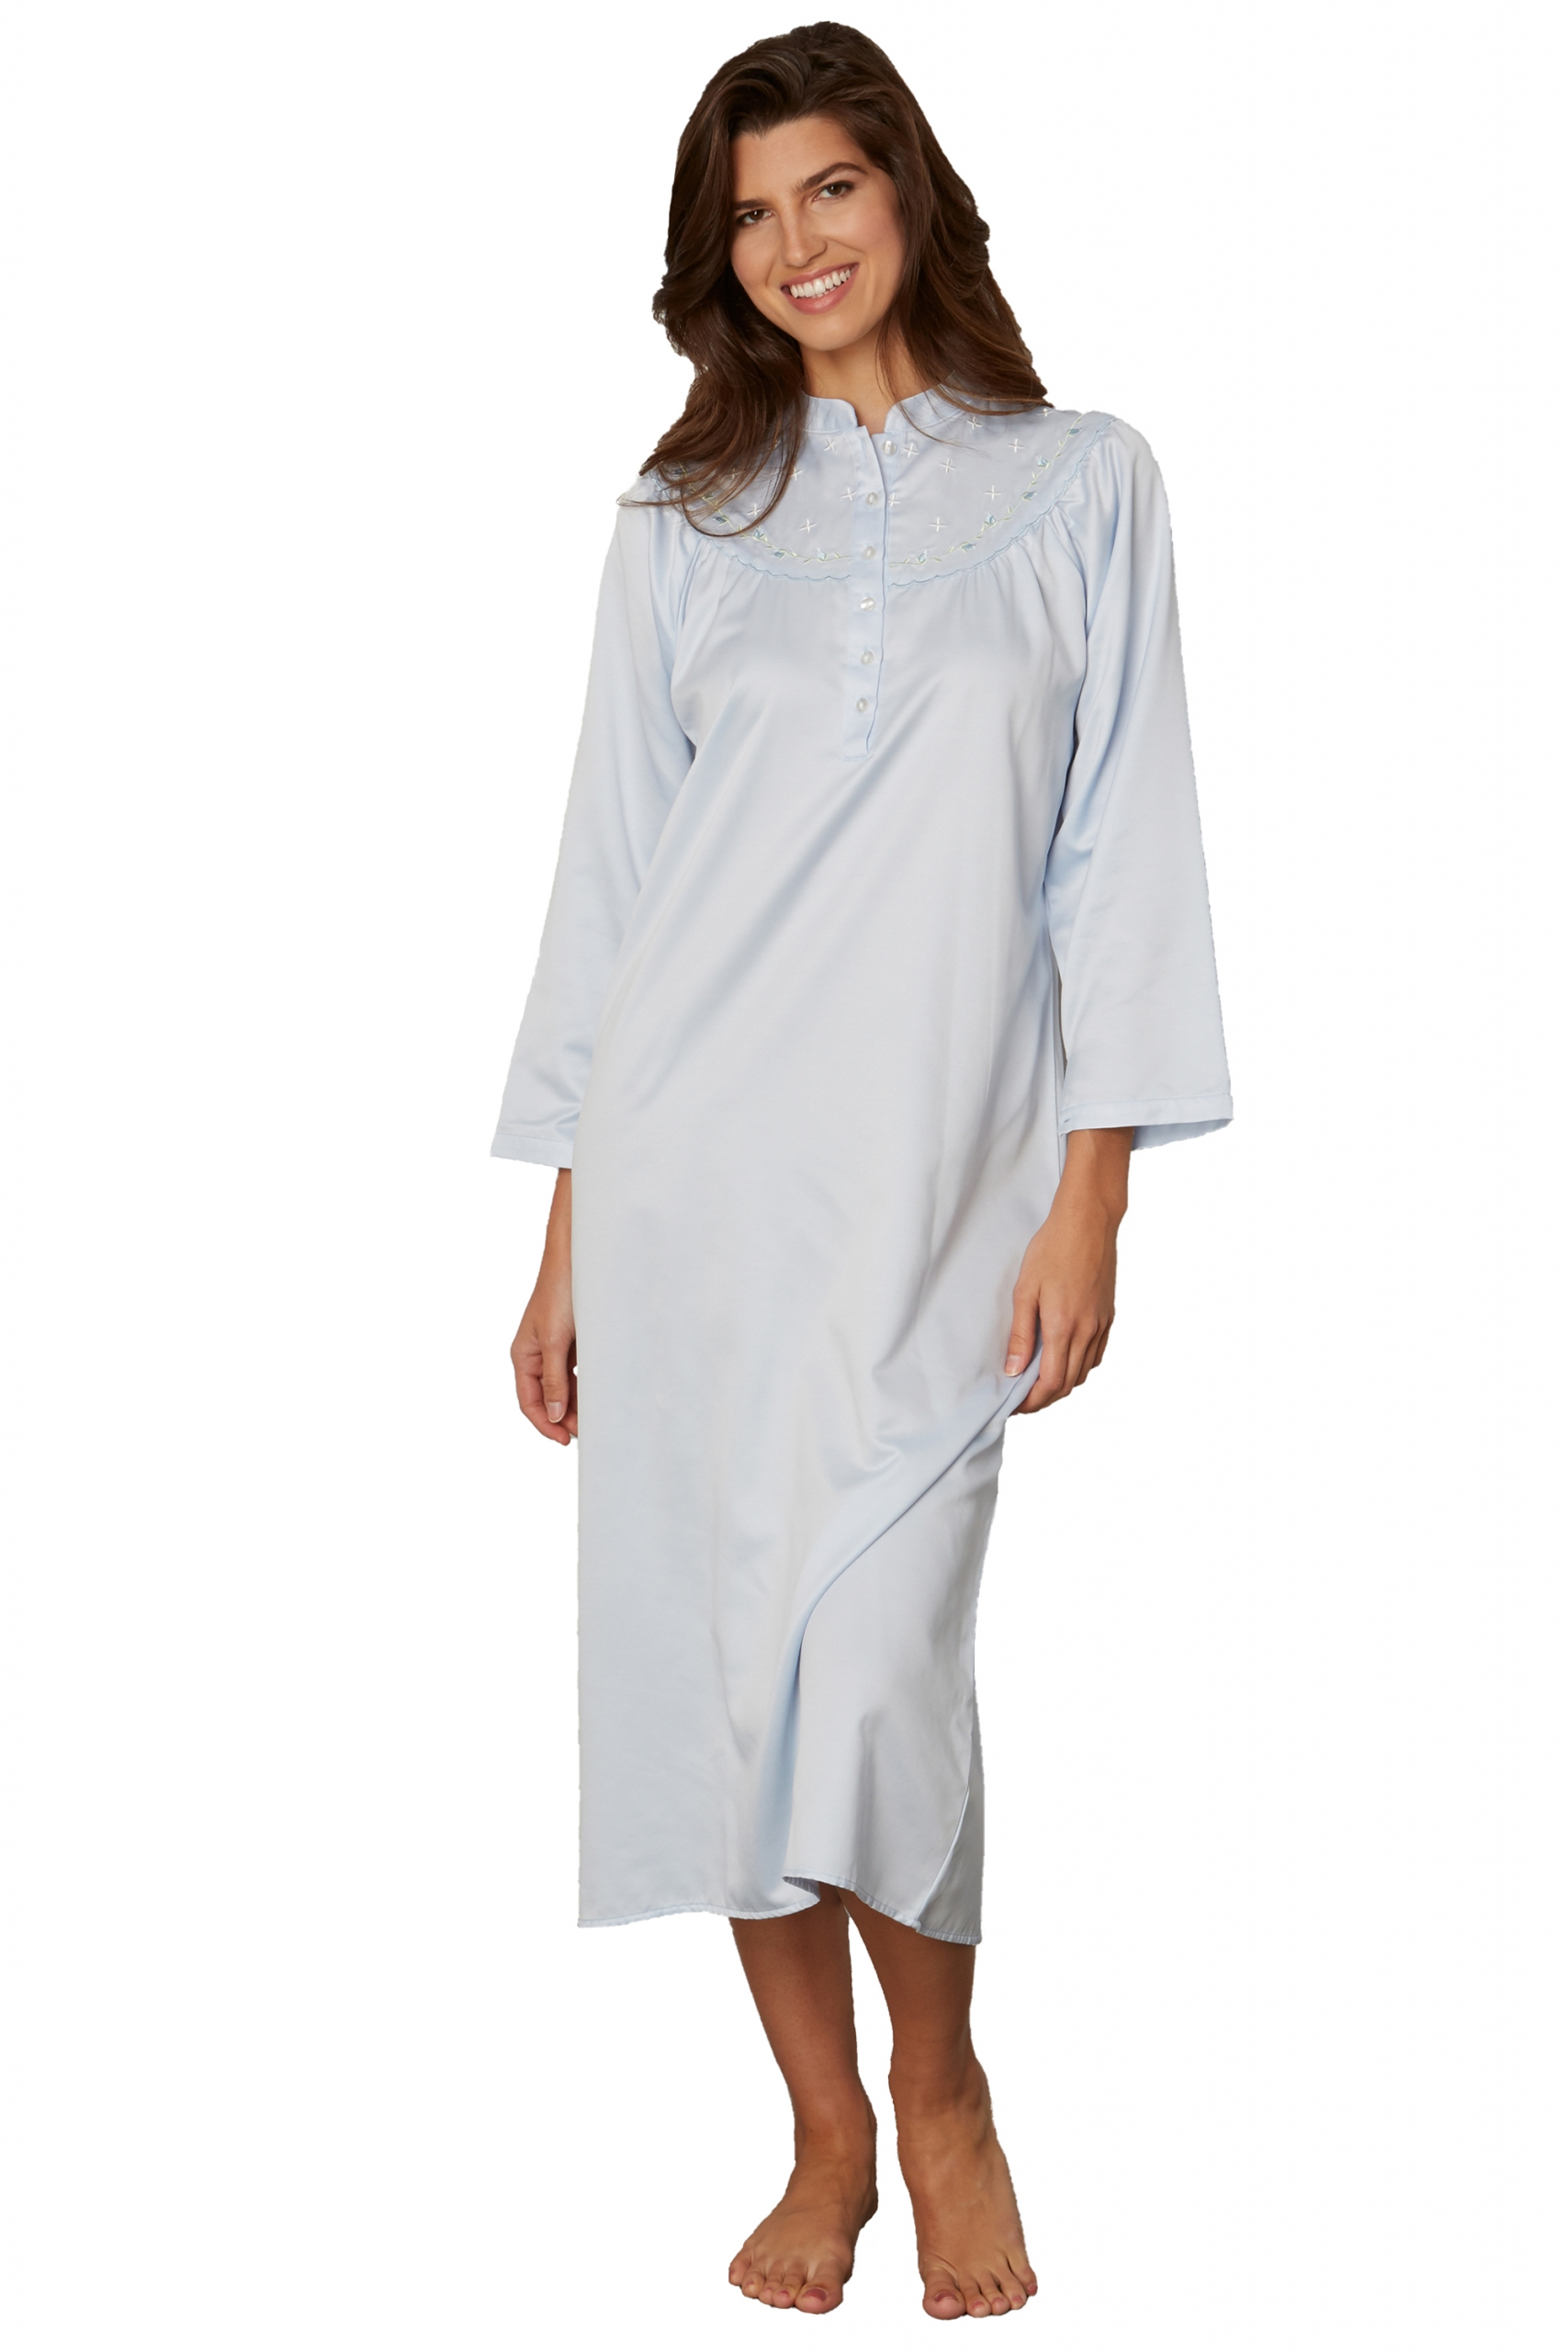 Kayanna Satin-Cotton Nightshirt